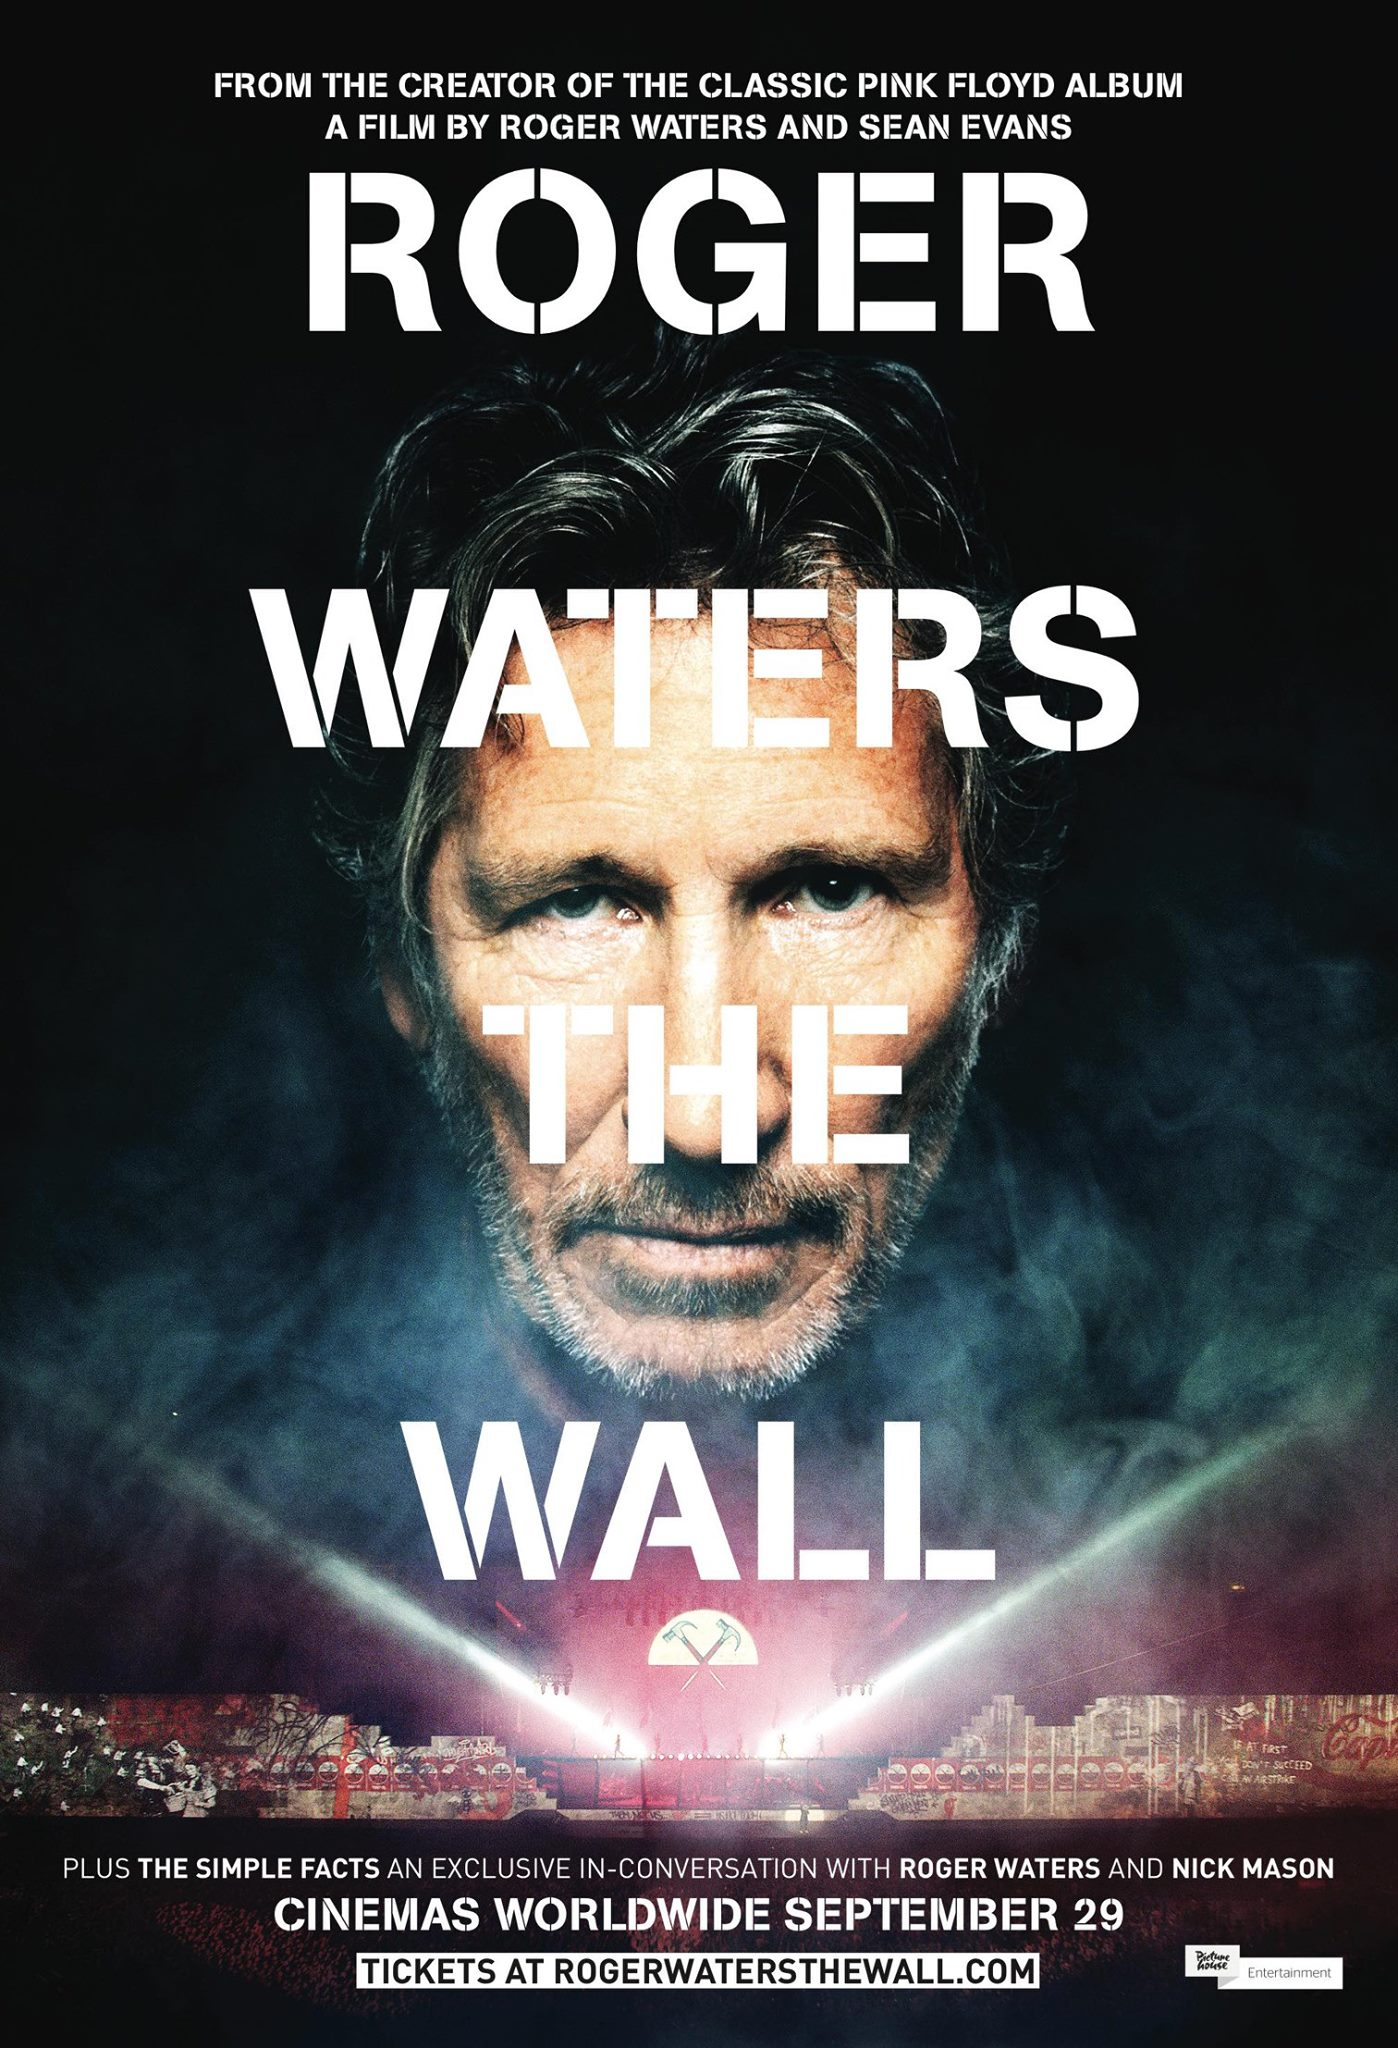 Roger Waters The Wall Film 2015